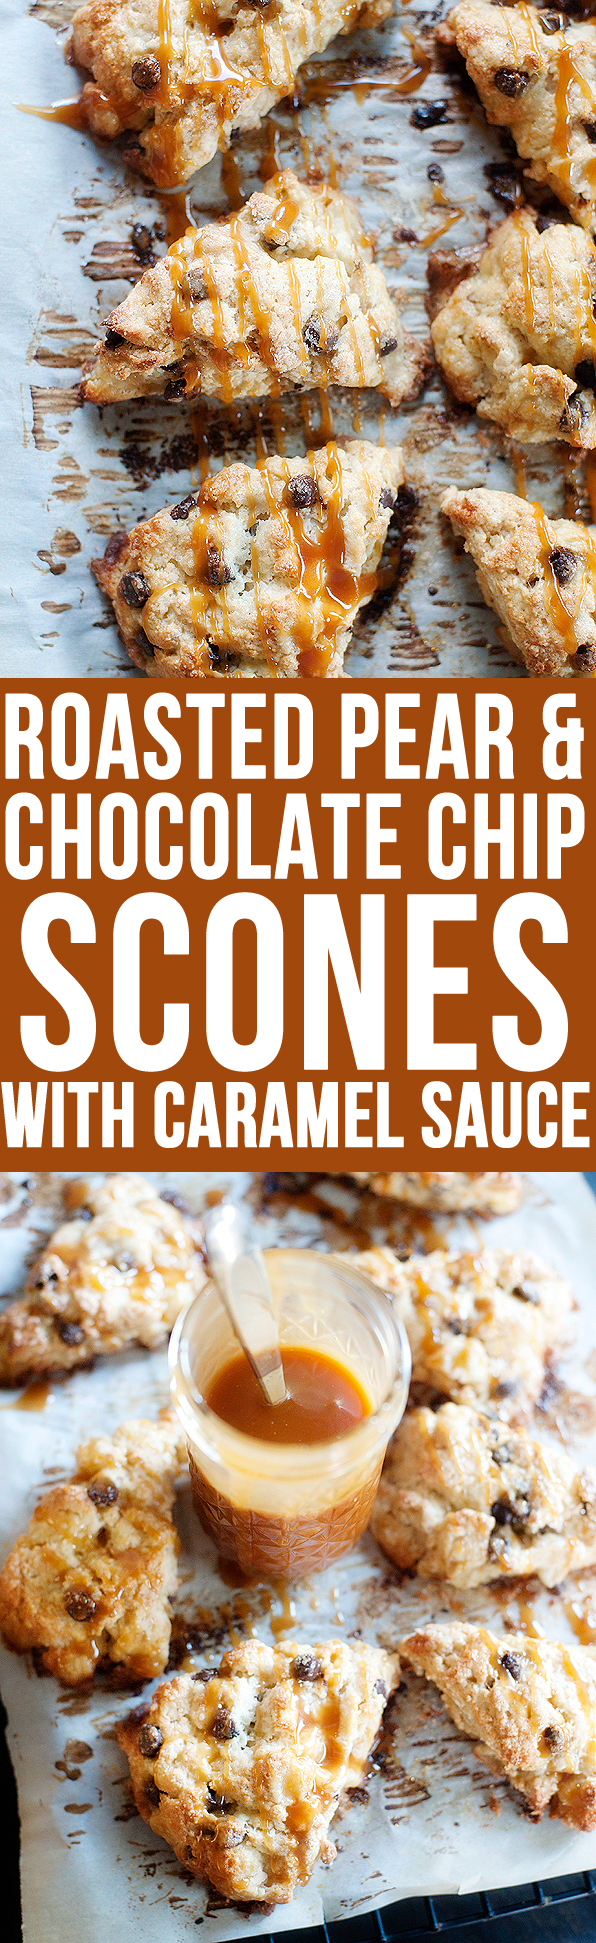 roasted pear & chocolate chip scones with salted caramel sauce ...